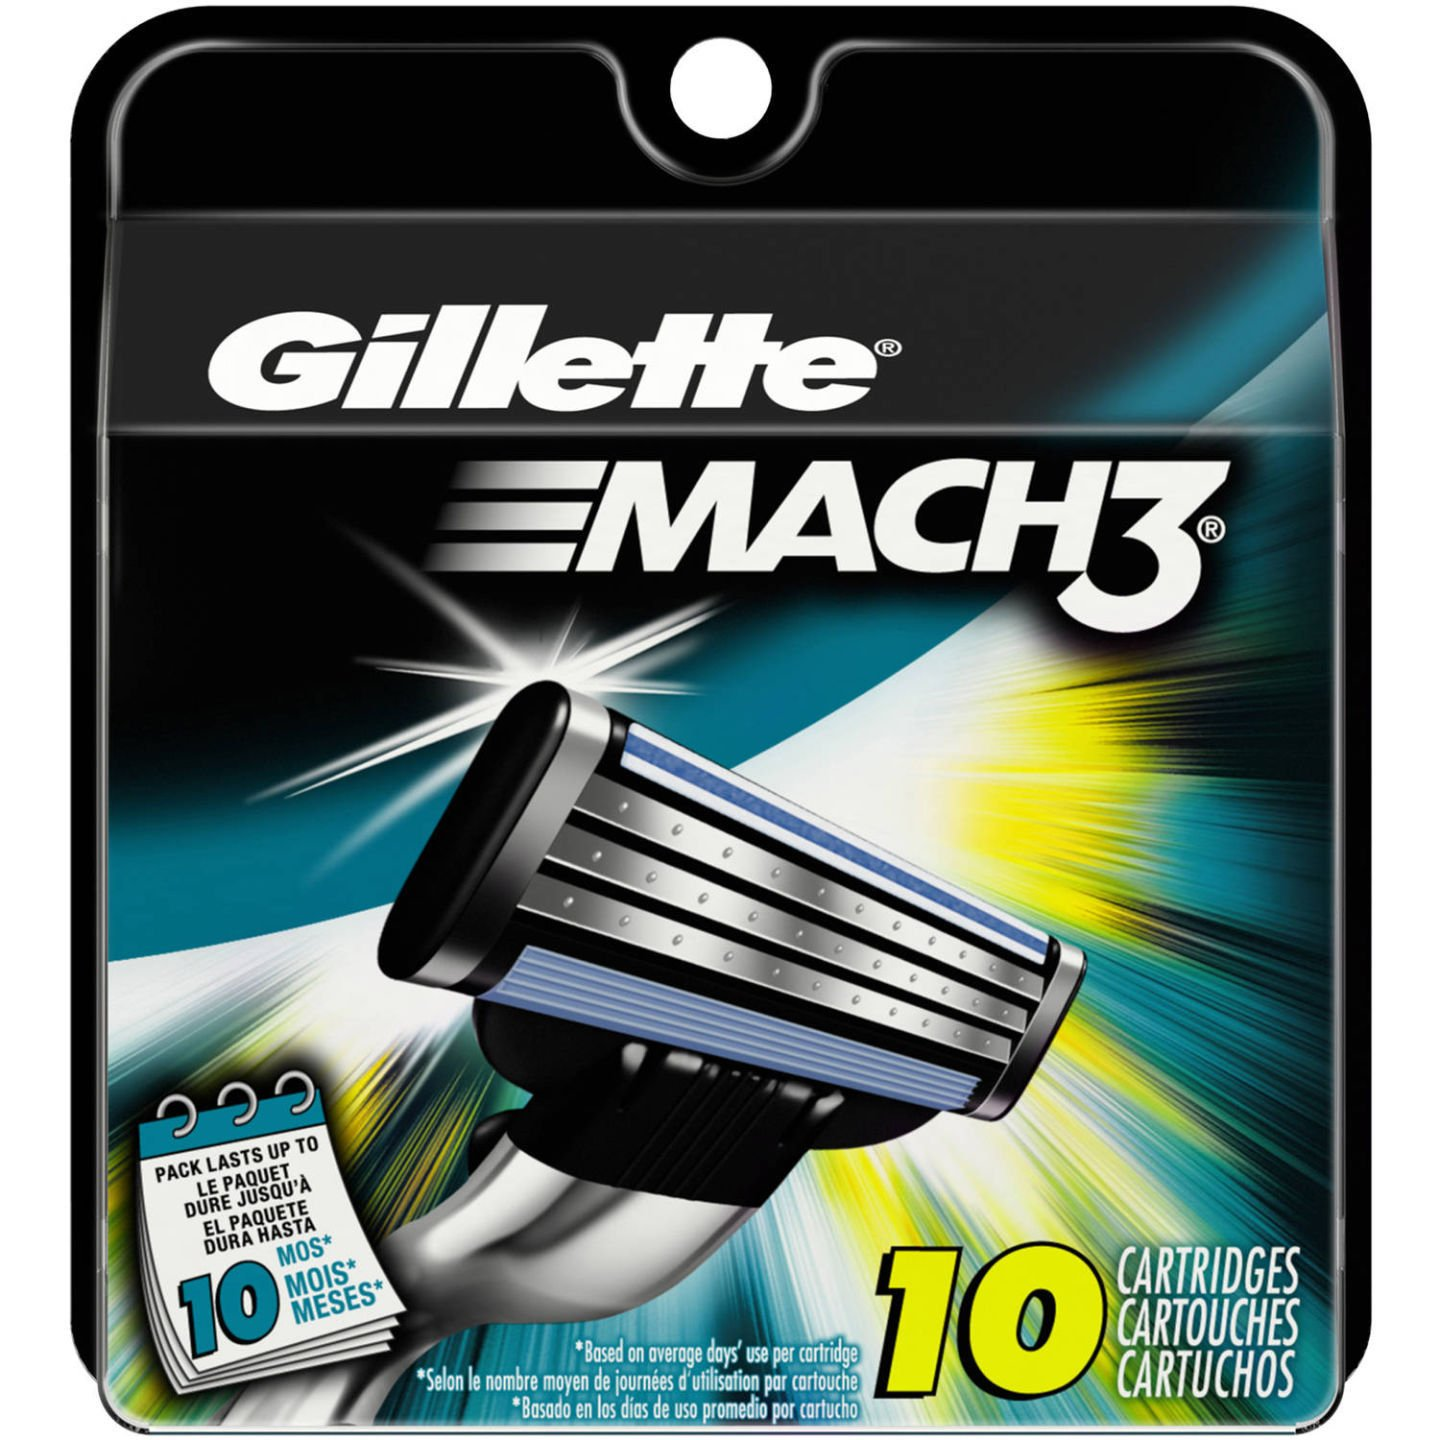 Gillette sues Schick maker over claims for Mach3 rival